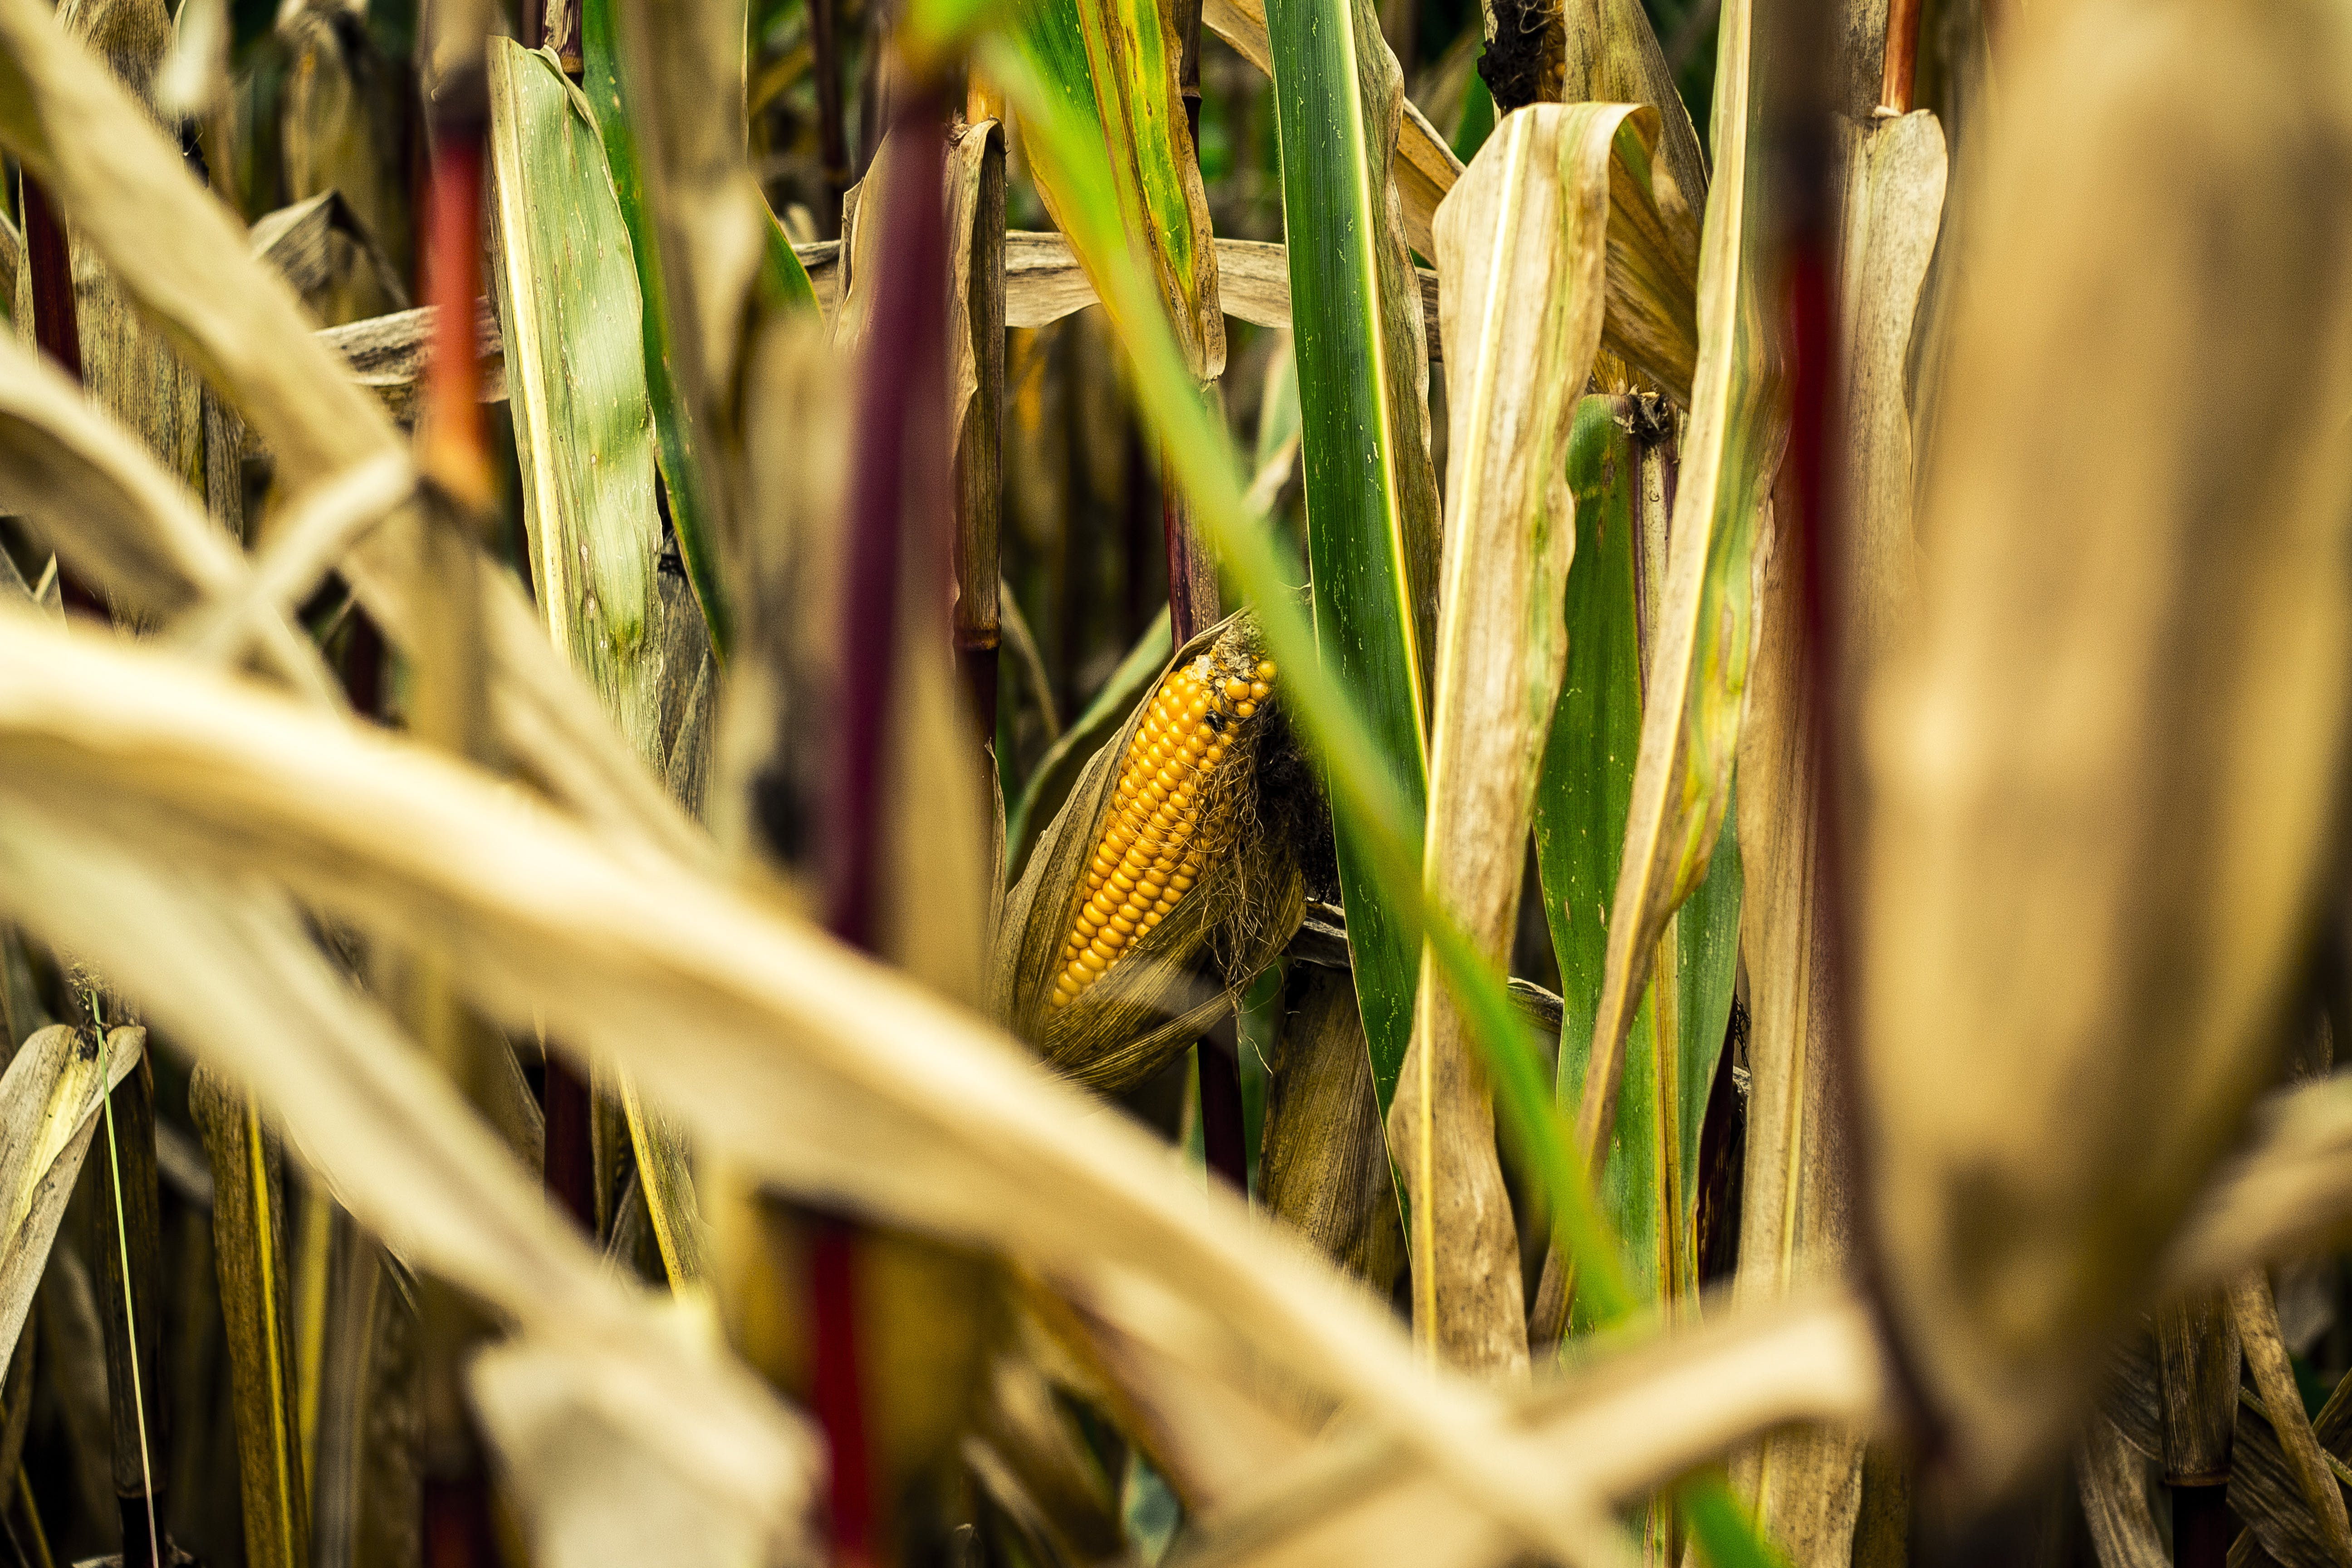 Brown and Green Corn Field